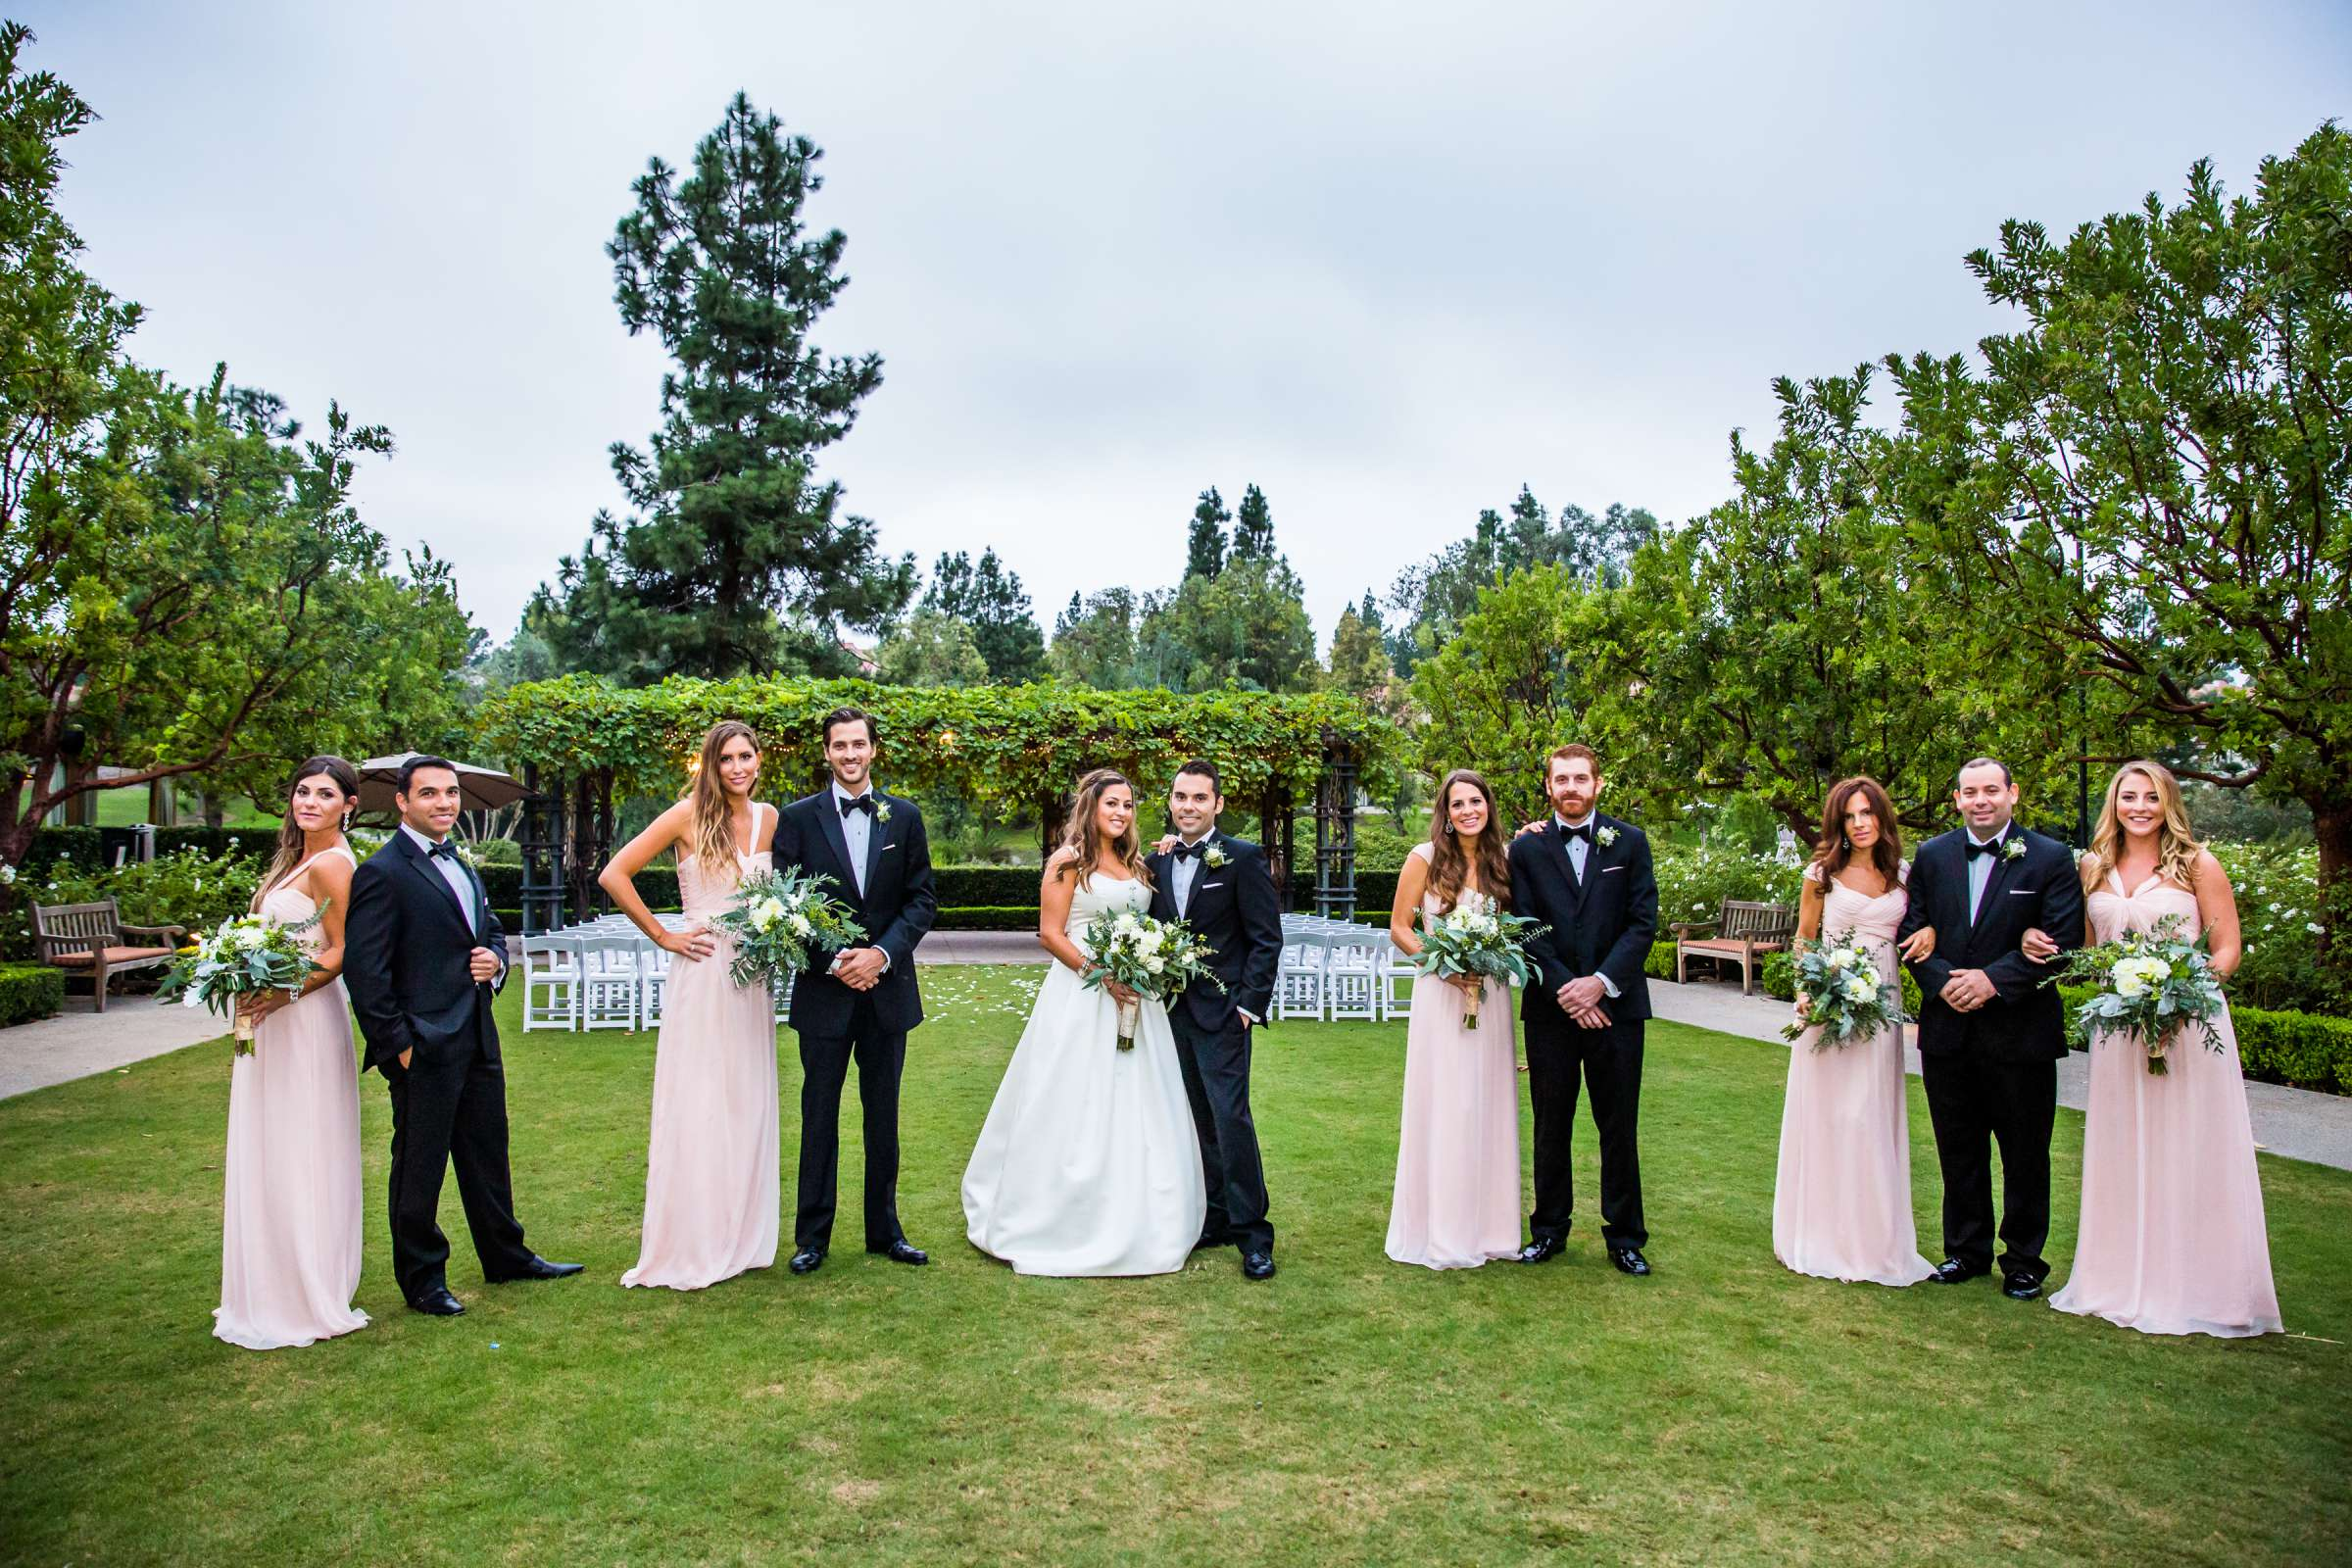 Rancho Bernardo Inn Wedding coordinated by Très Chic Events, Stefania and Nicholas Wedding Photo #54 by True Photography